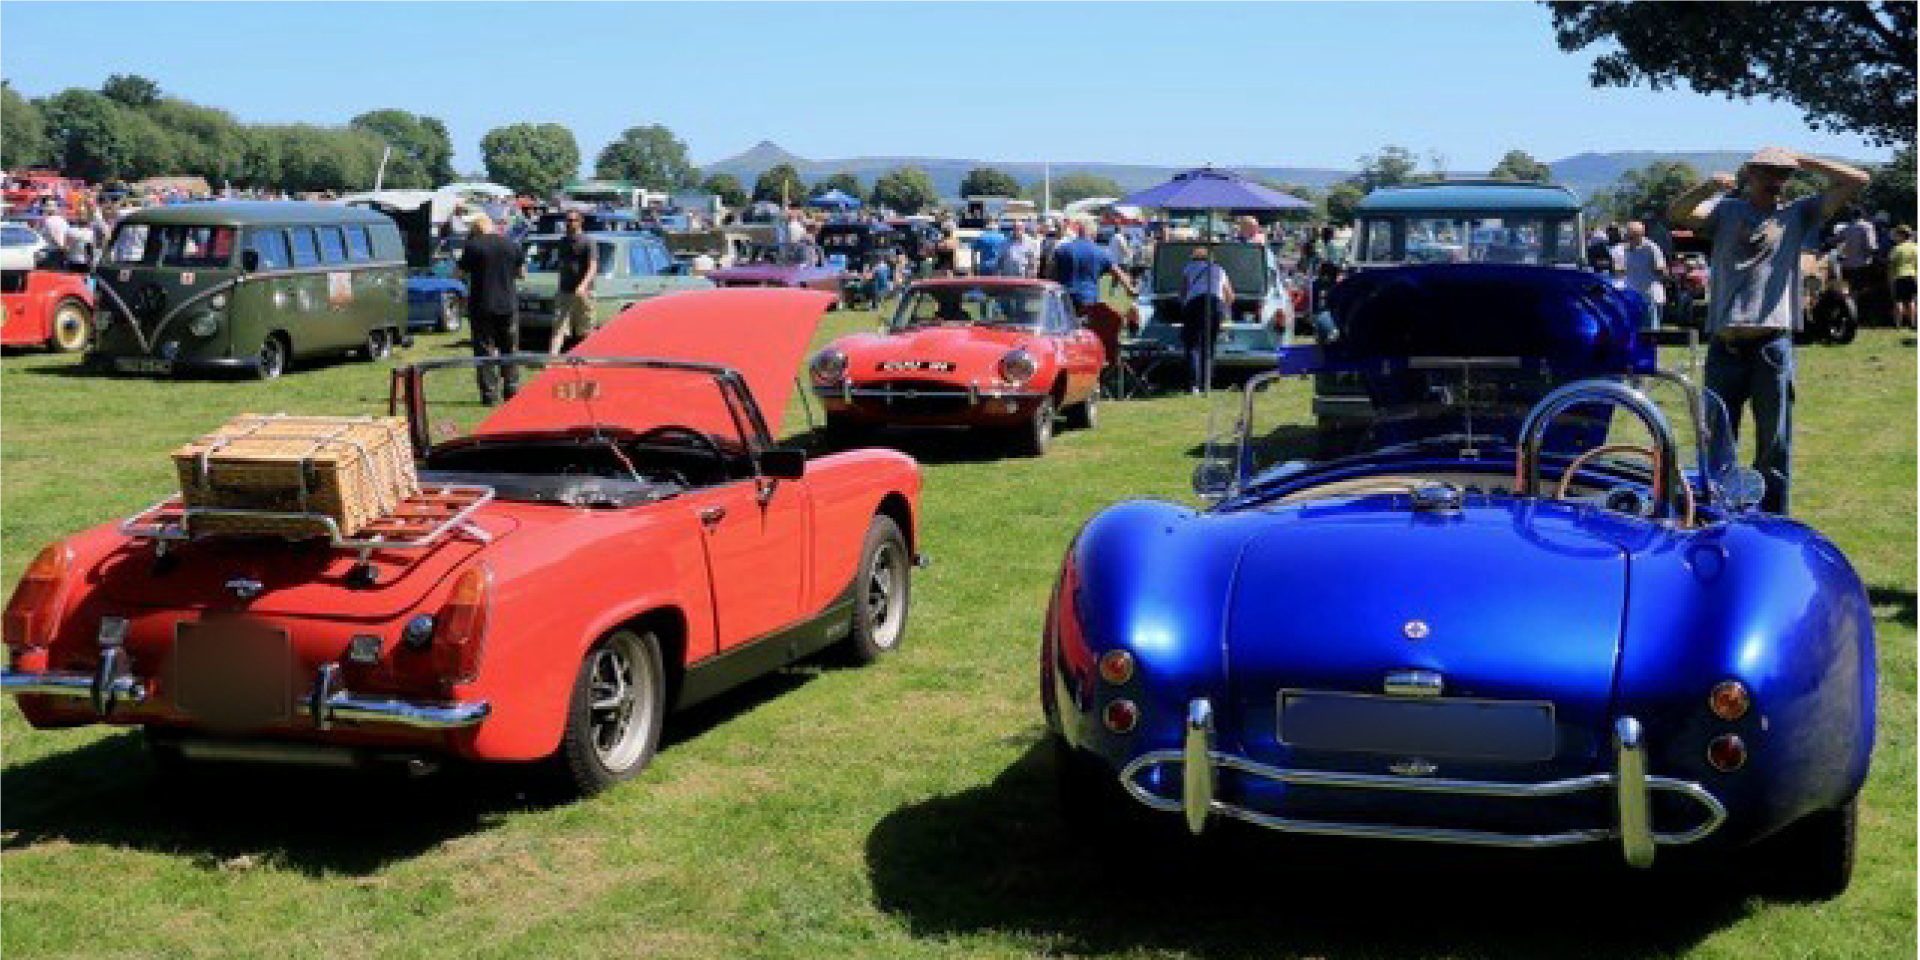 Stokesley's 'Classics on Show' Gets WWII Flavour With Eden Camp!